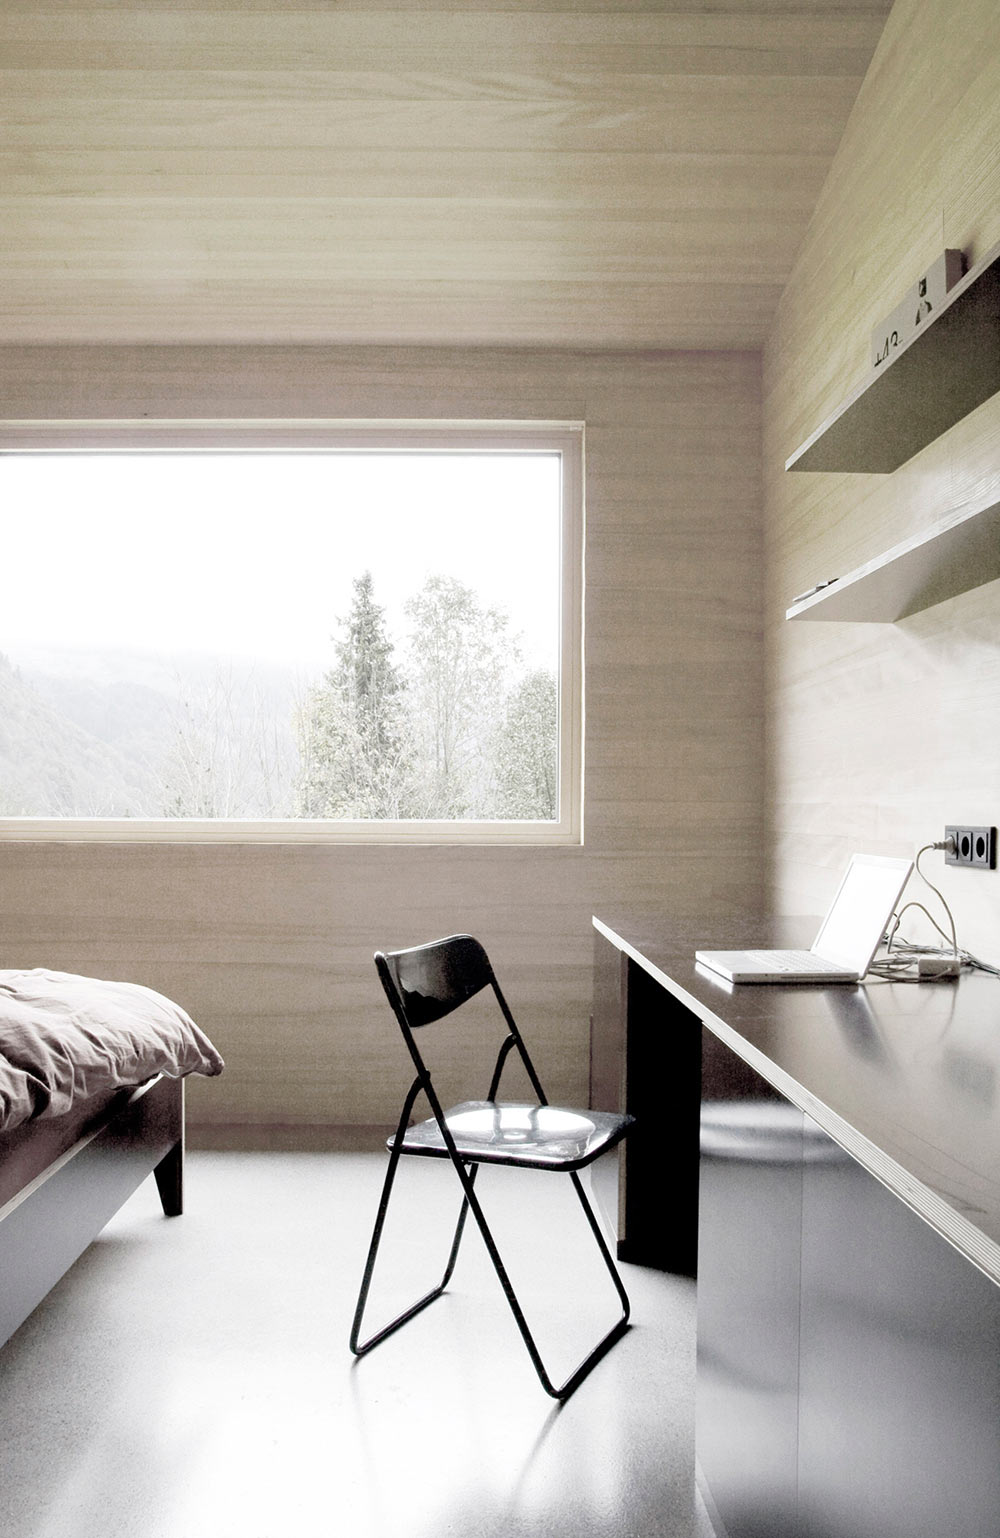 Bedroom, House for Gudrun in Mellau, Austria